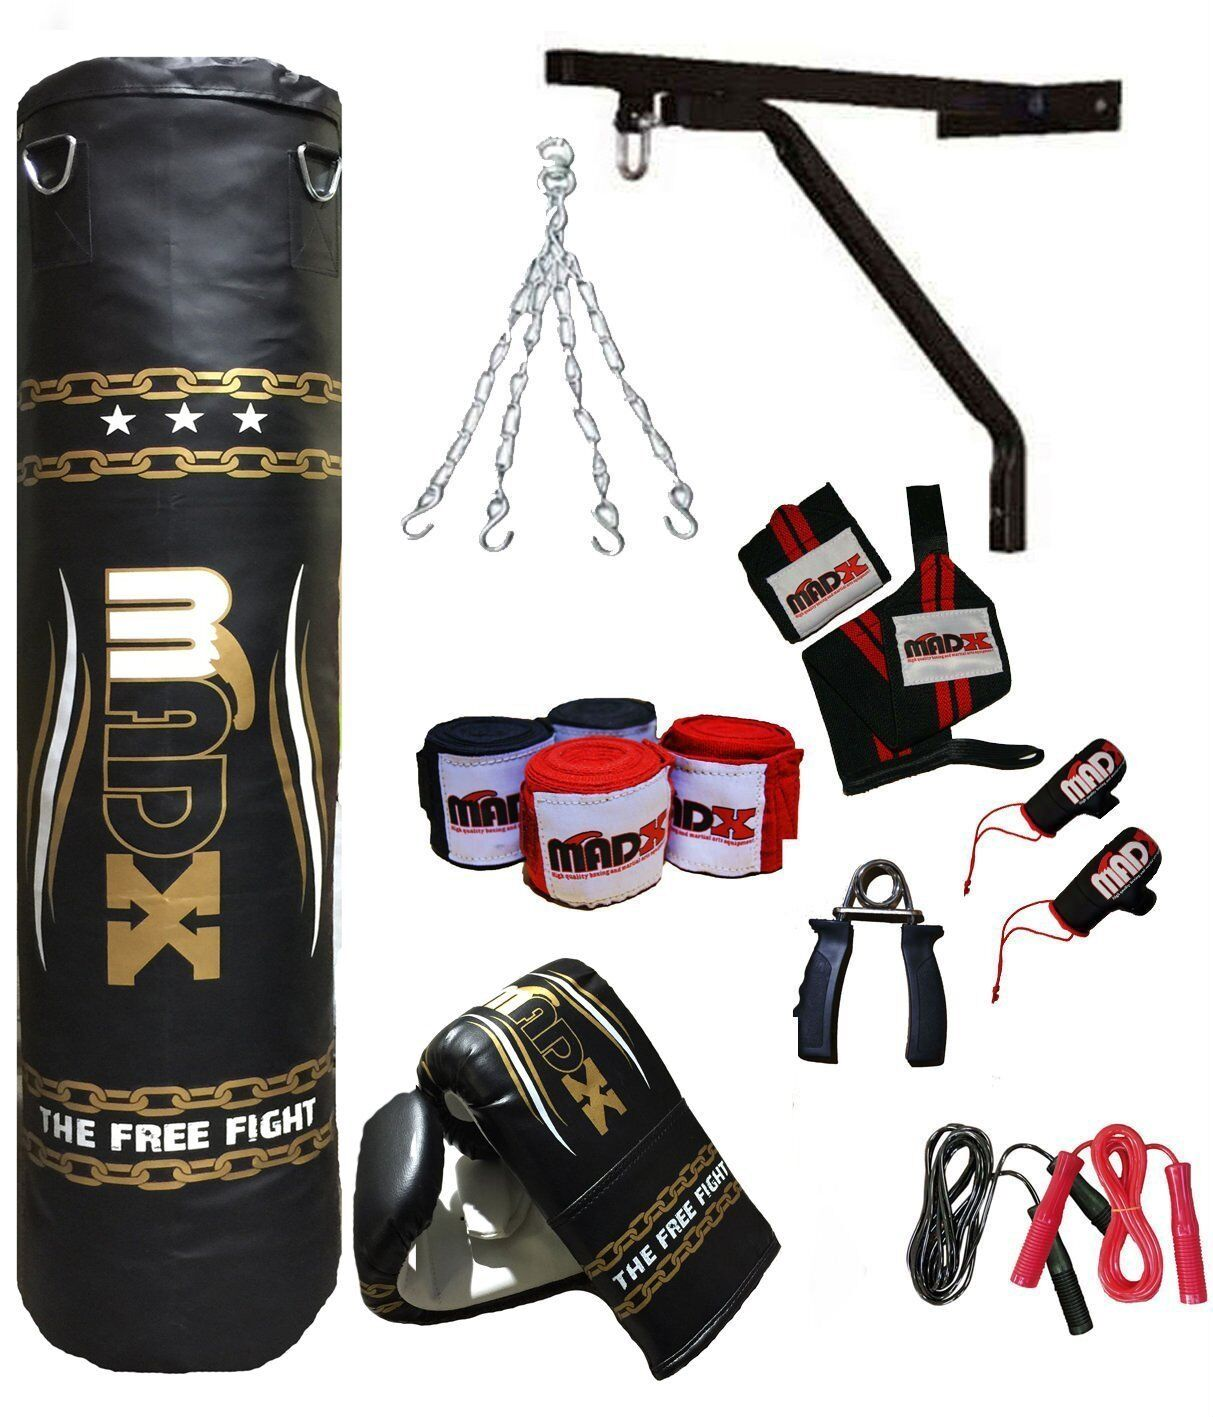 Madx 1,5 M Filled Pesado Mma Punch Patada Bolso, 13 Piece Boxeo Juego ,Guantes,